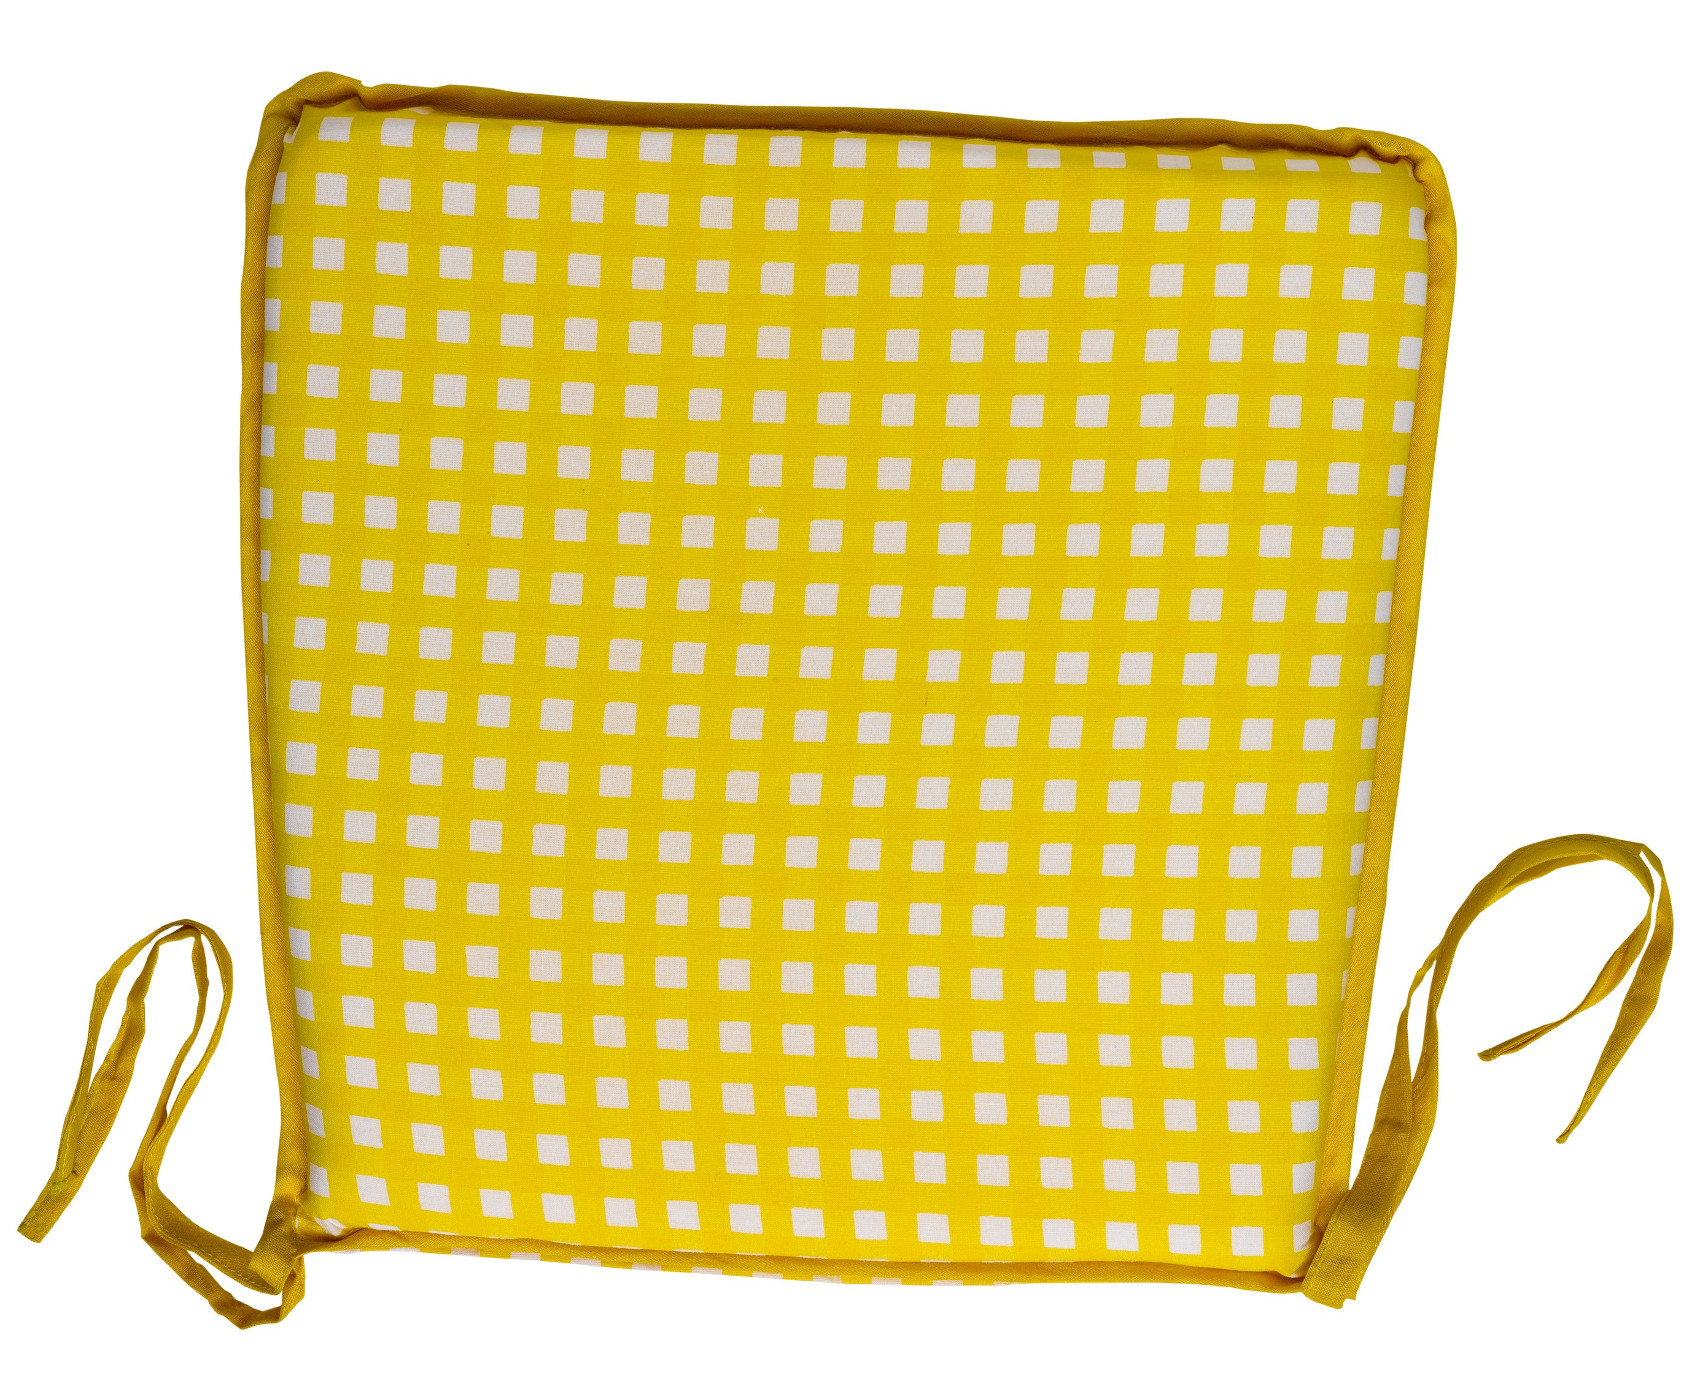 Garden Seat Pad 100 Cotton Gingham Check Kitchen Dining